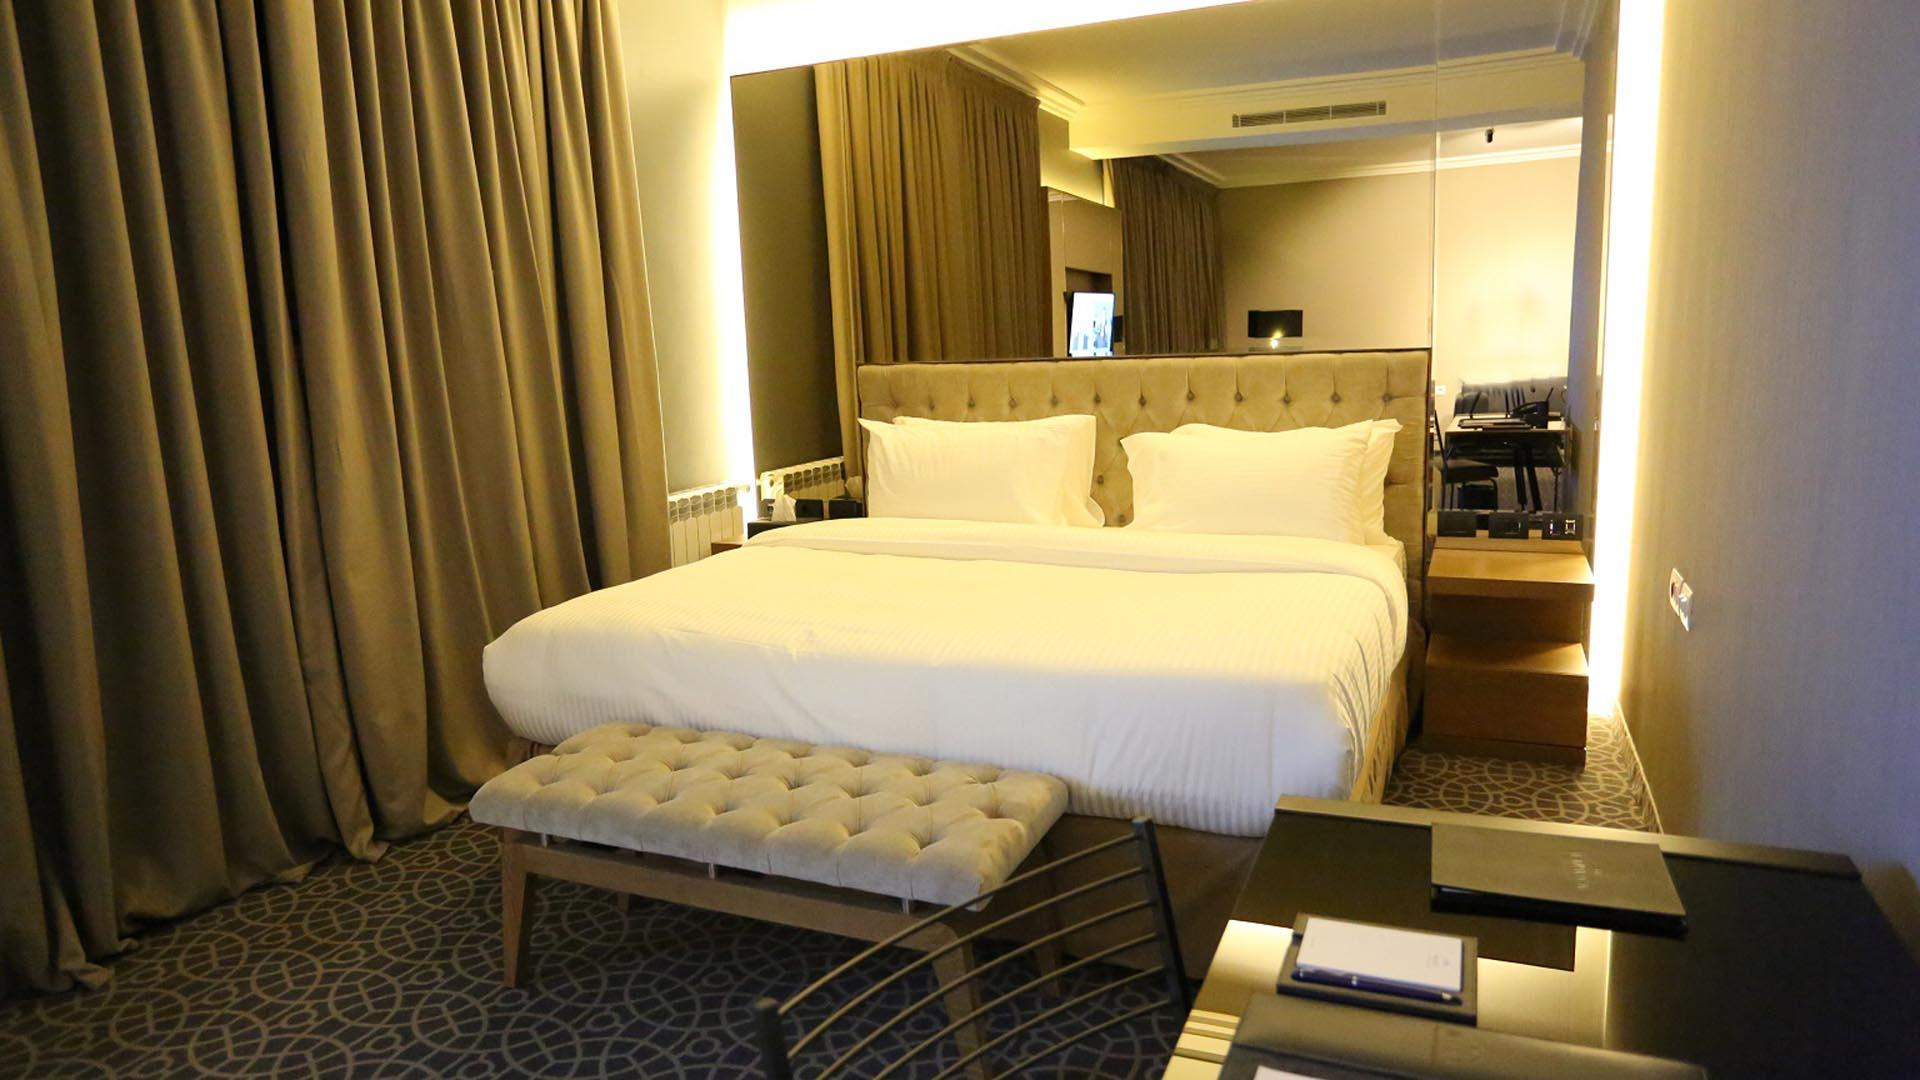 Deluxe Suite at Mist Hotel and Spa